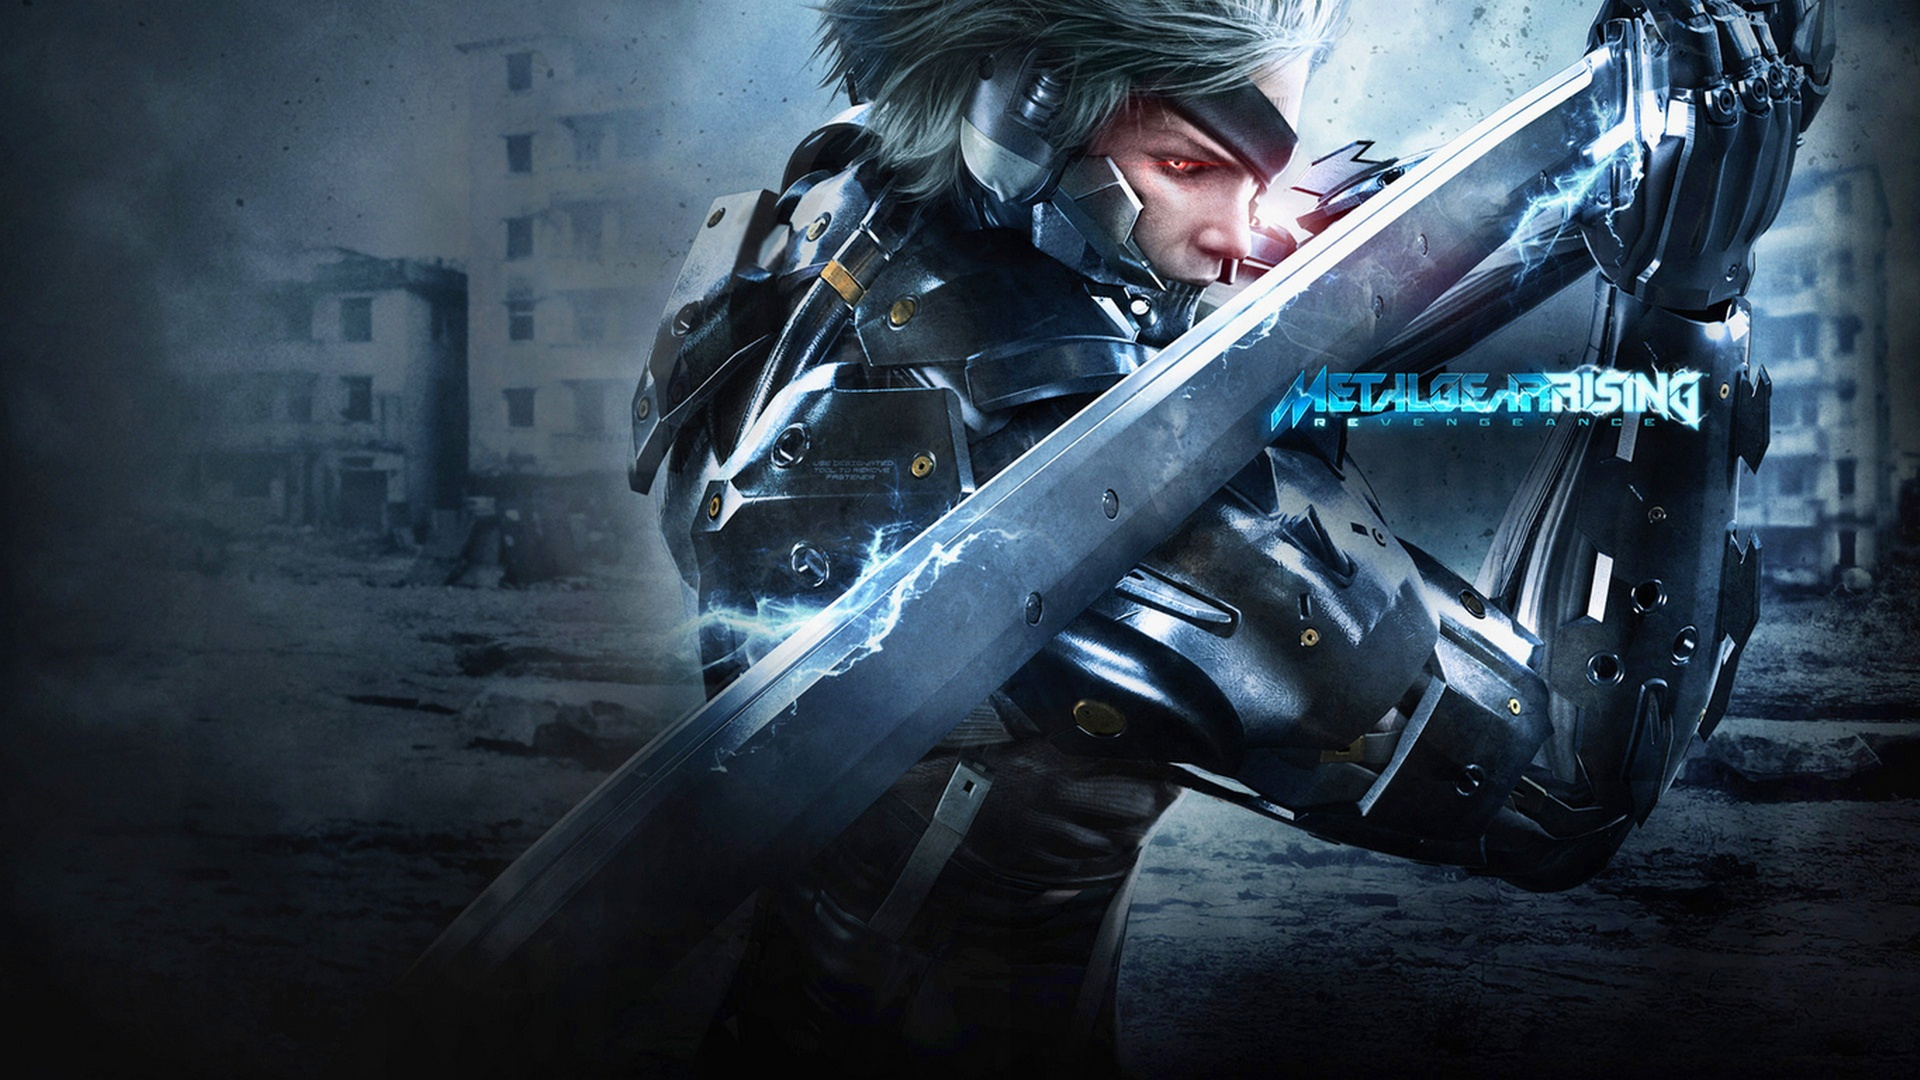 metal_gear_rising_revengeance-1920x1080.jpg